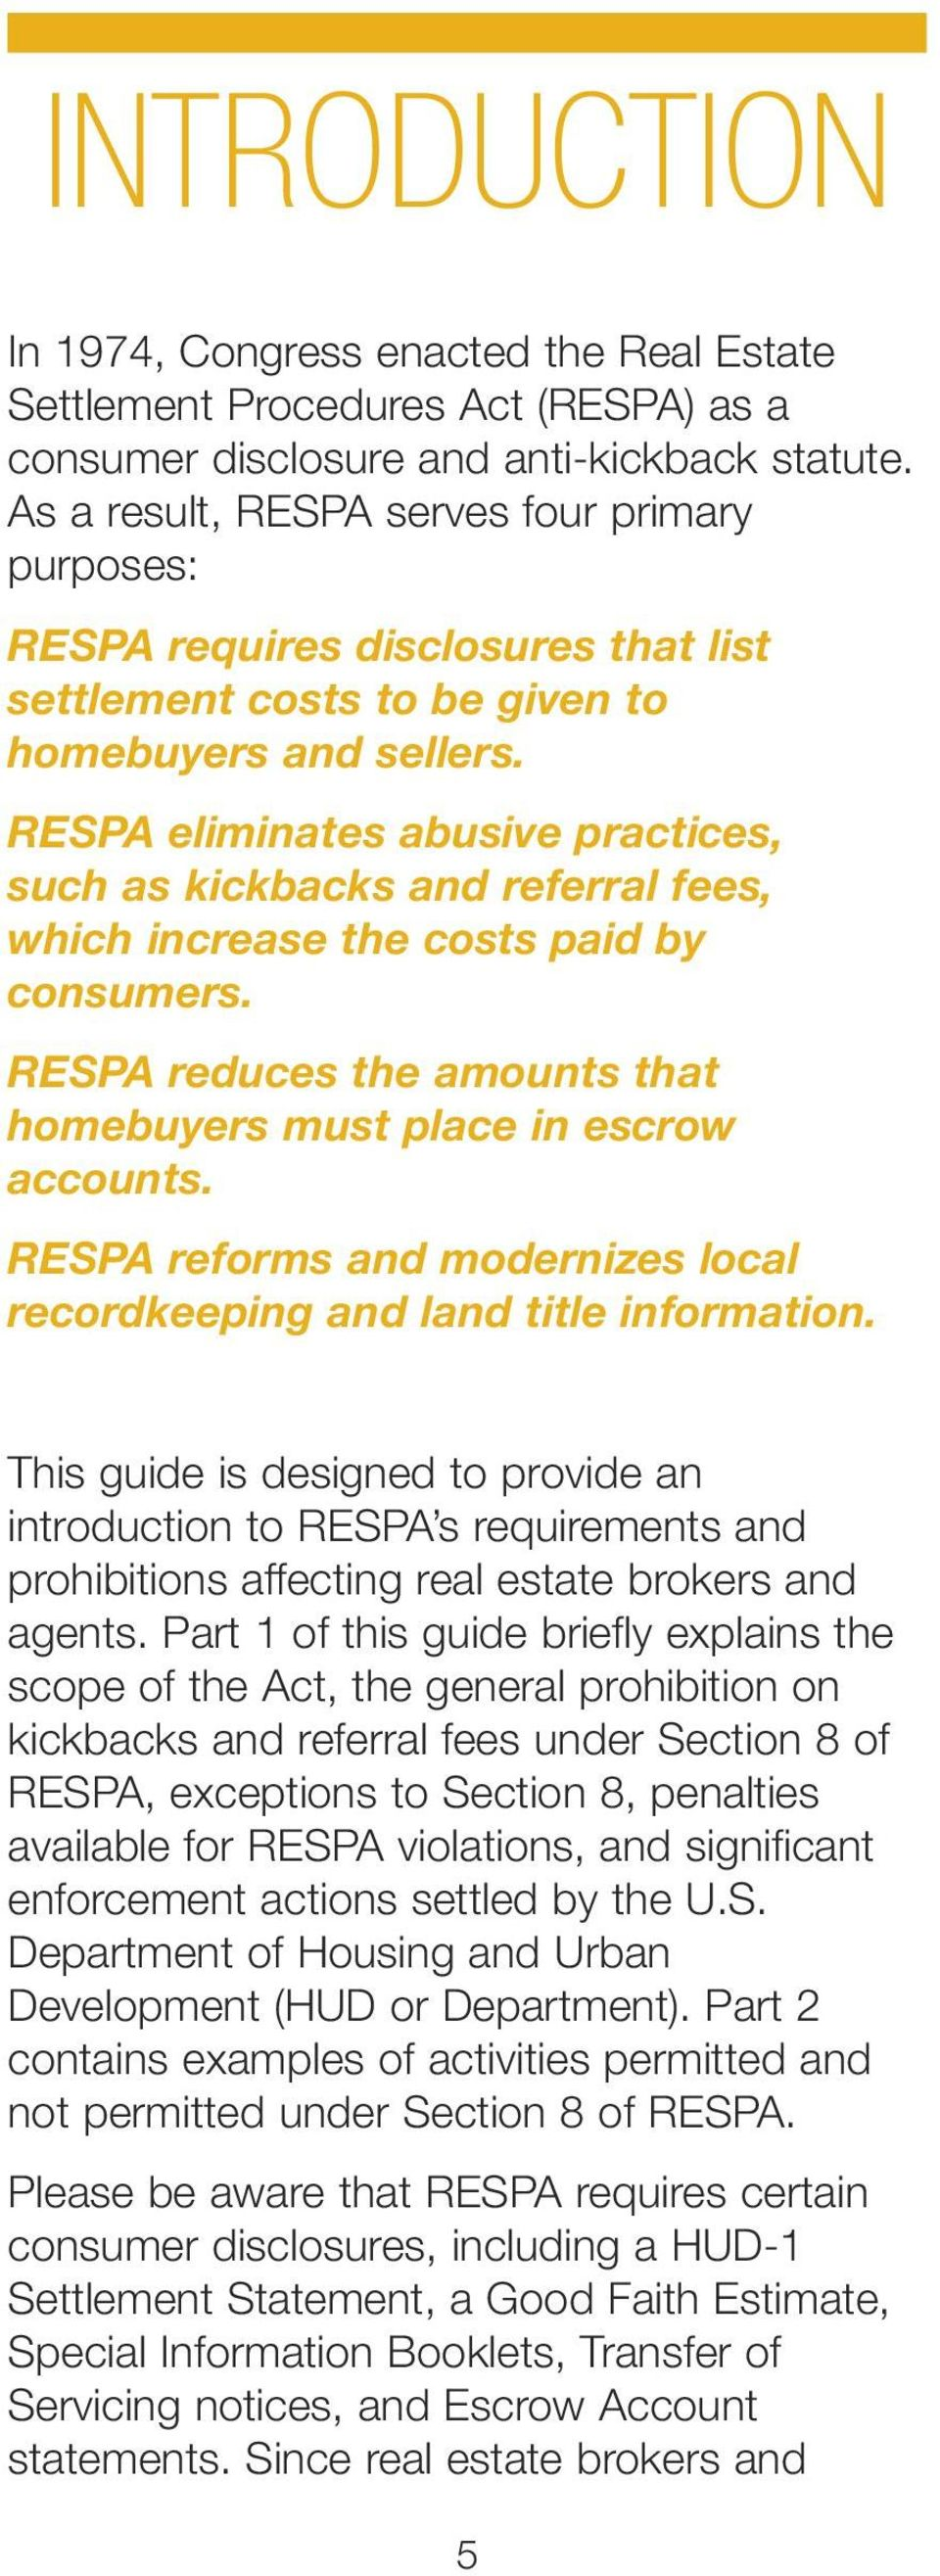 RESPA eliminates abusive practices, such as kickbacks and referral fees, which increase the costs paid by consumers. RESPA reduces the amounts that homebuyers must place in escrow accounts.